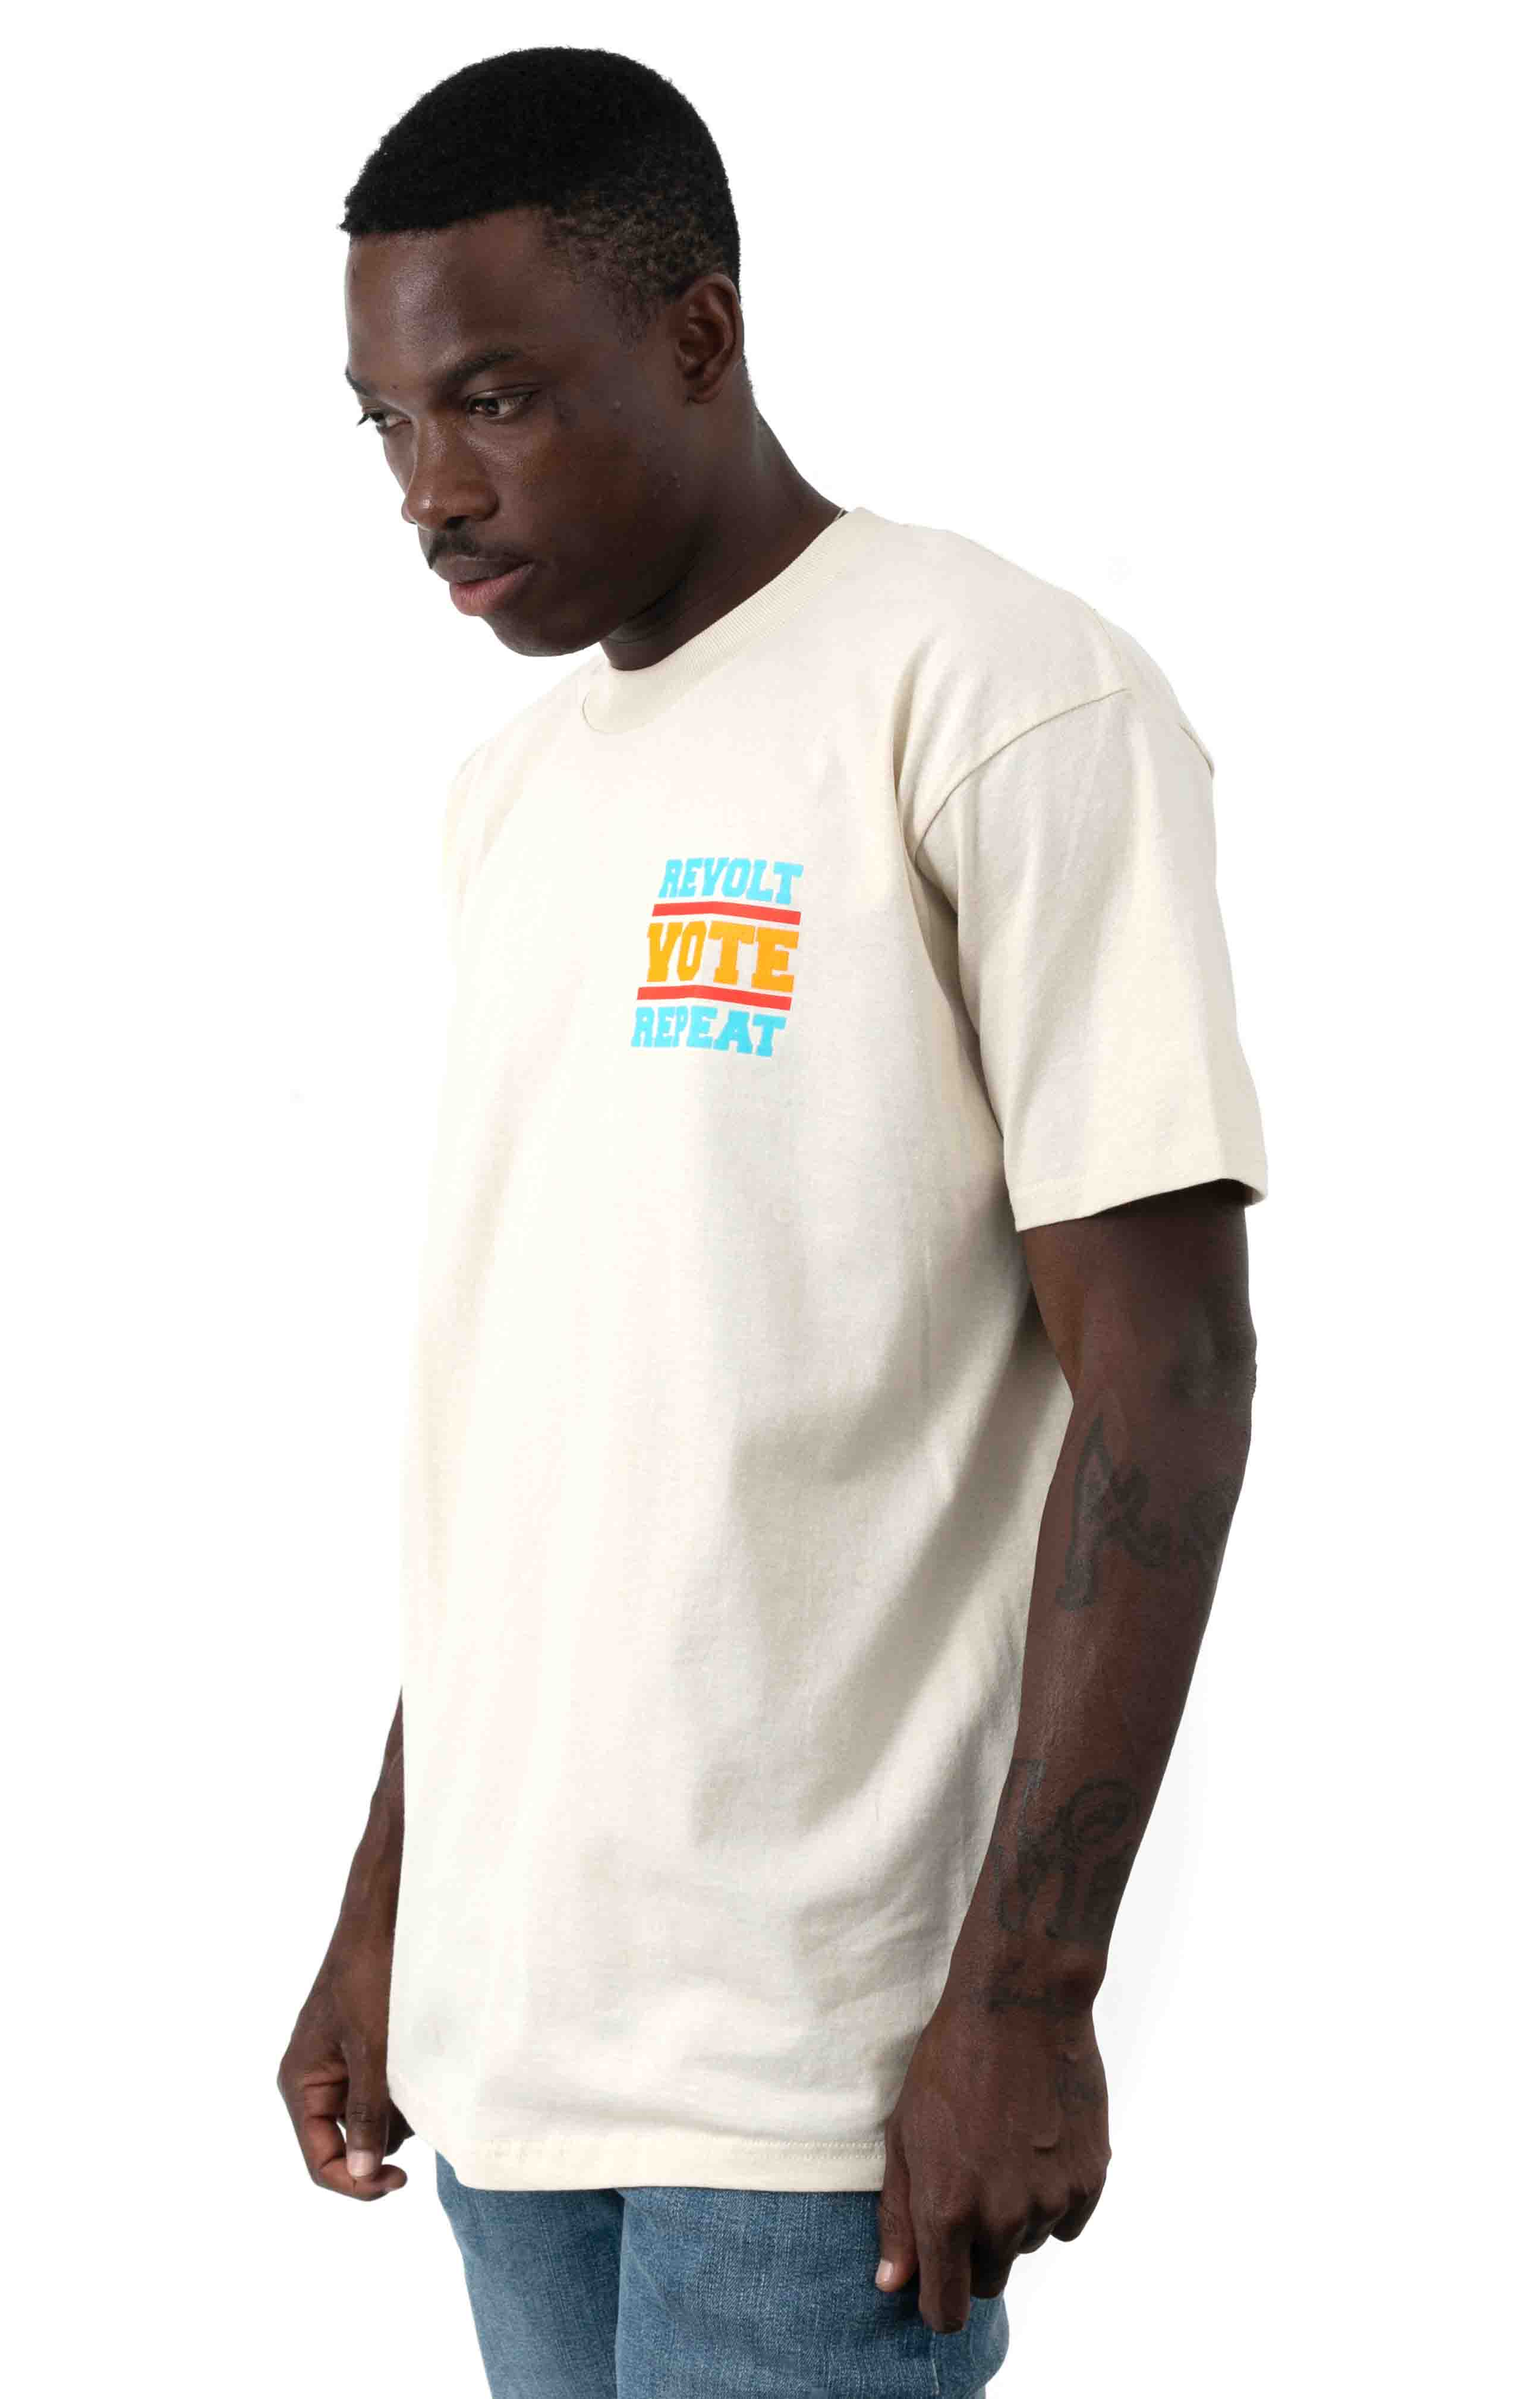 Revolt Vote Repeat T-Shirt - Cream  3